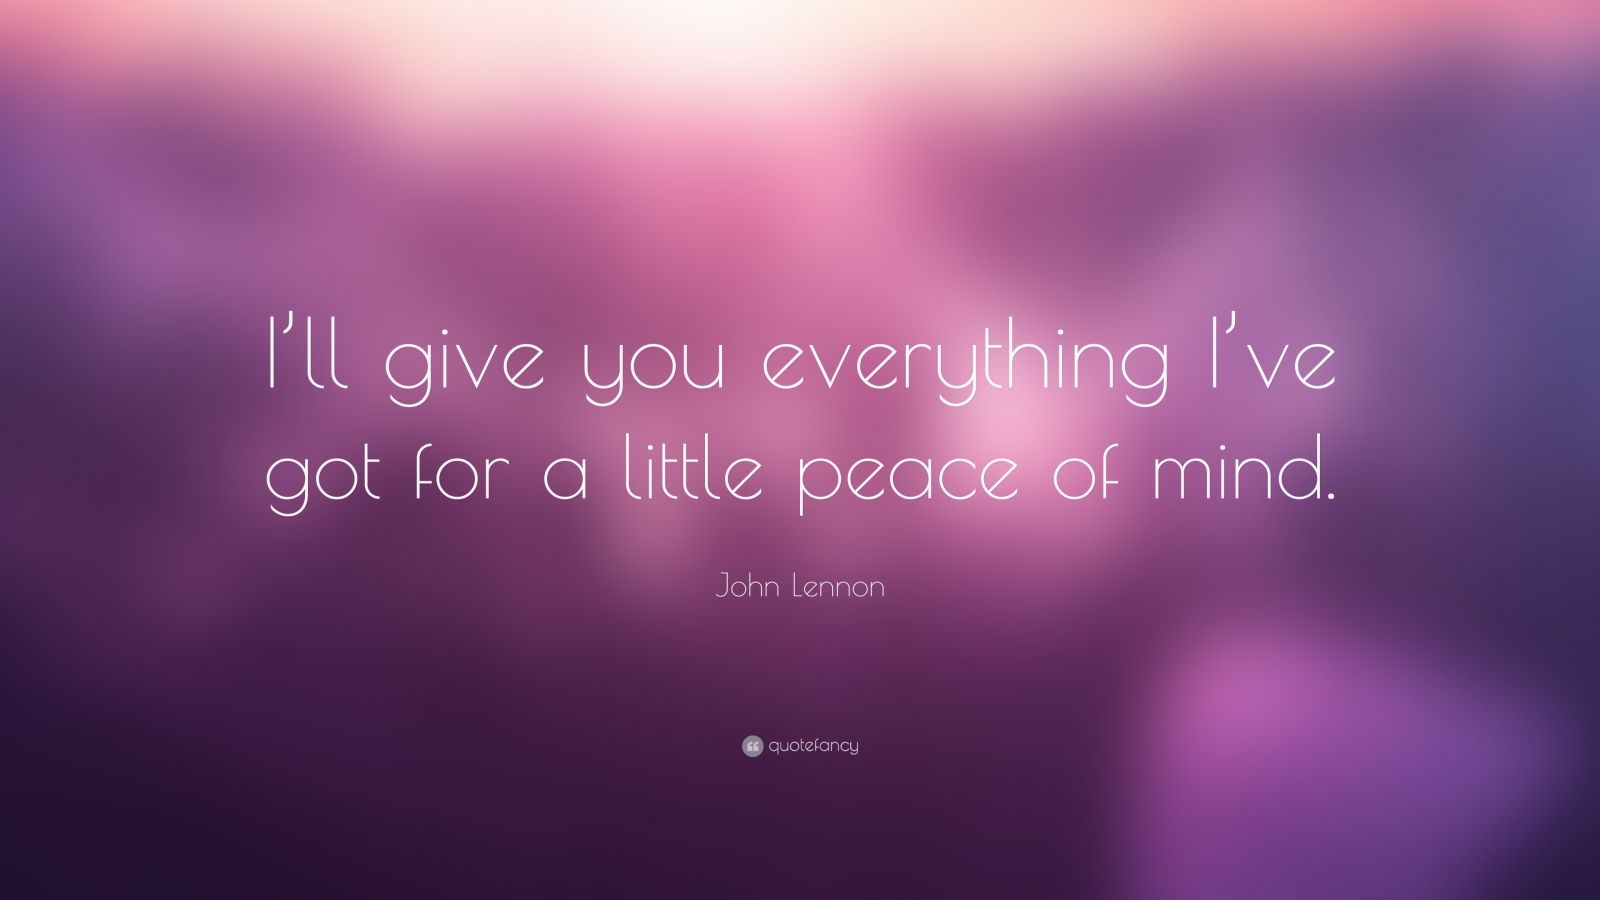 """John Lennon Quote: """"I'll give you everything I've got for a little peace of mind."""""""